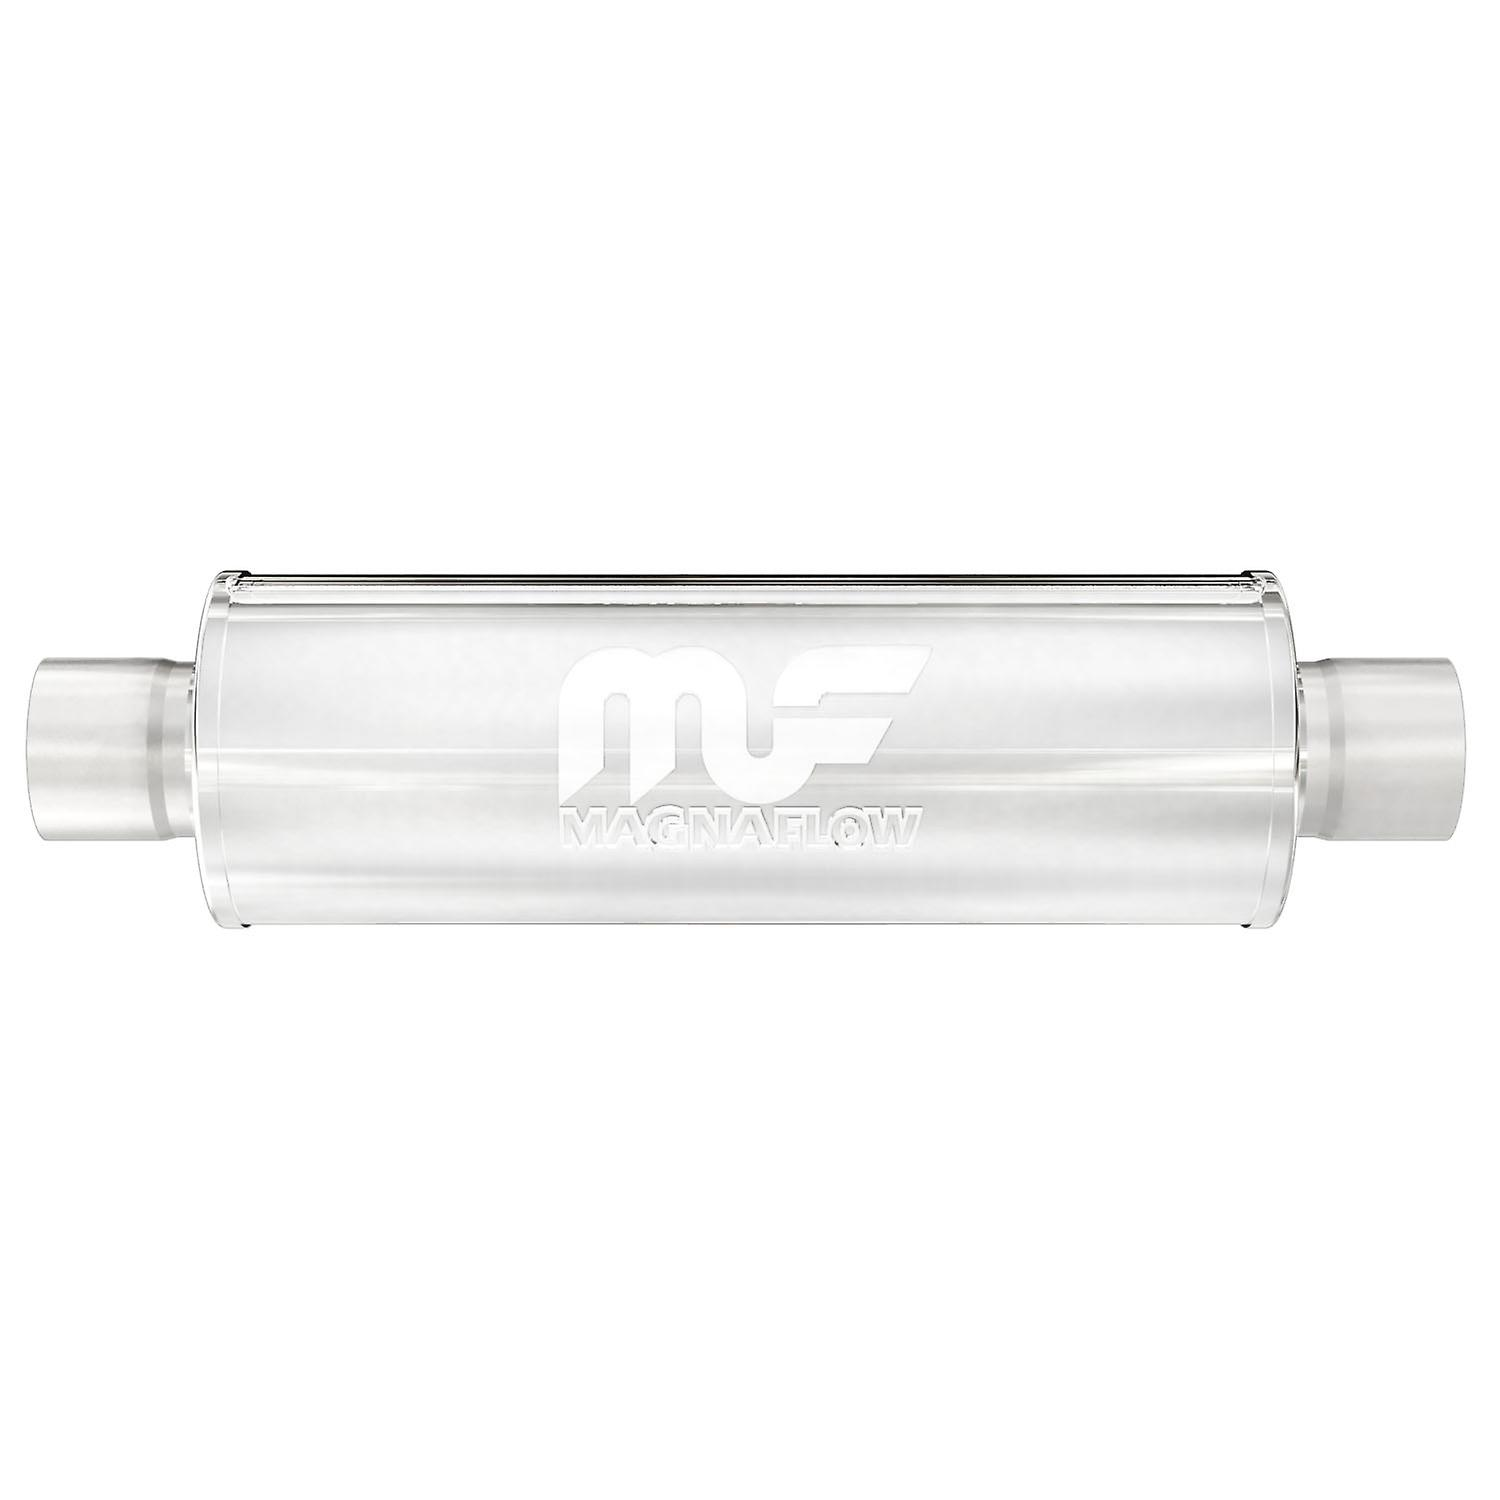 MagnaFFaible Exhaust Products 14419 Straight Through